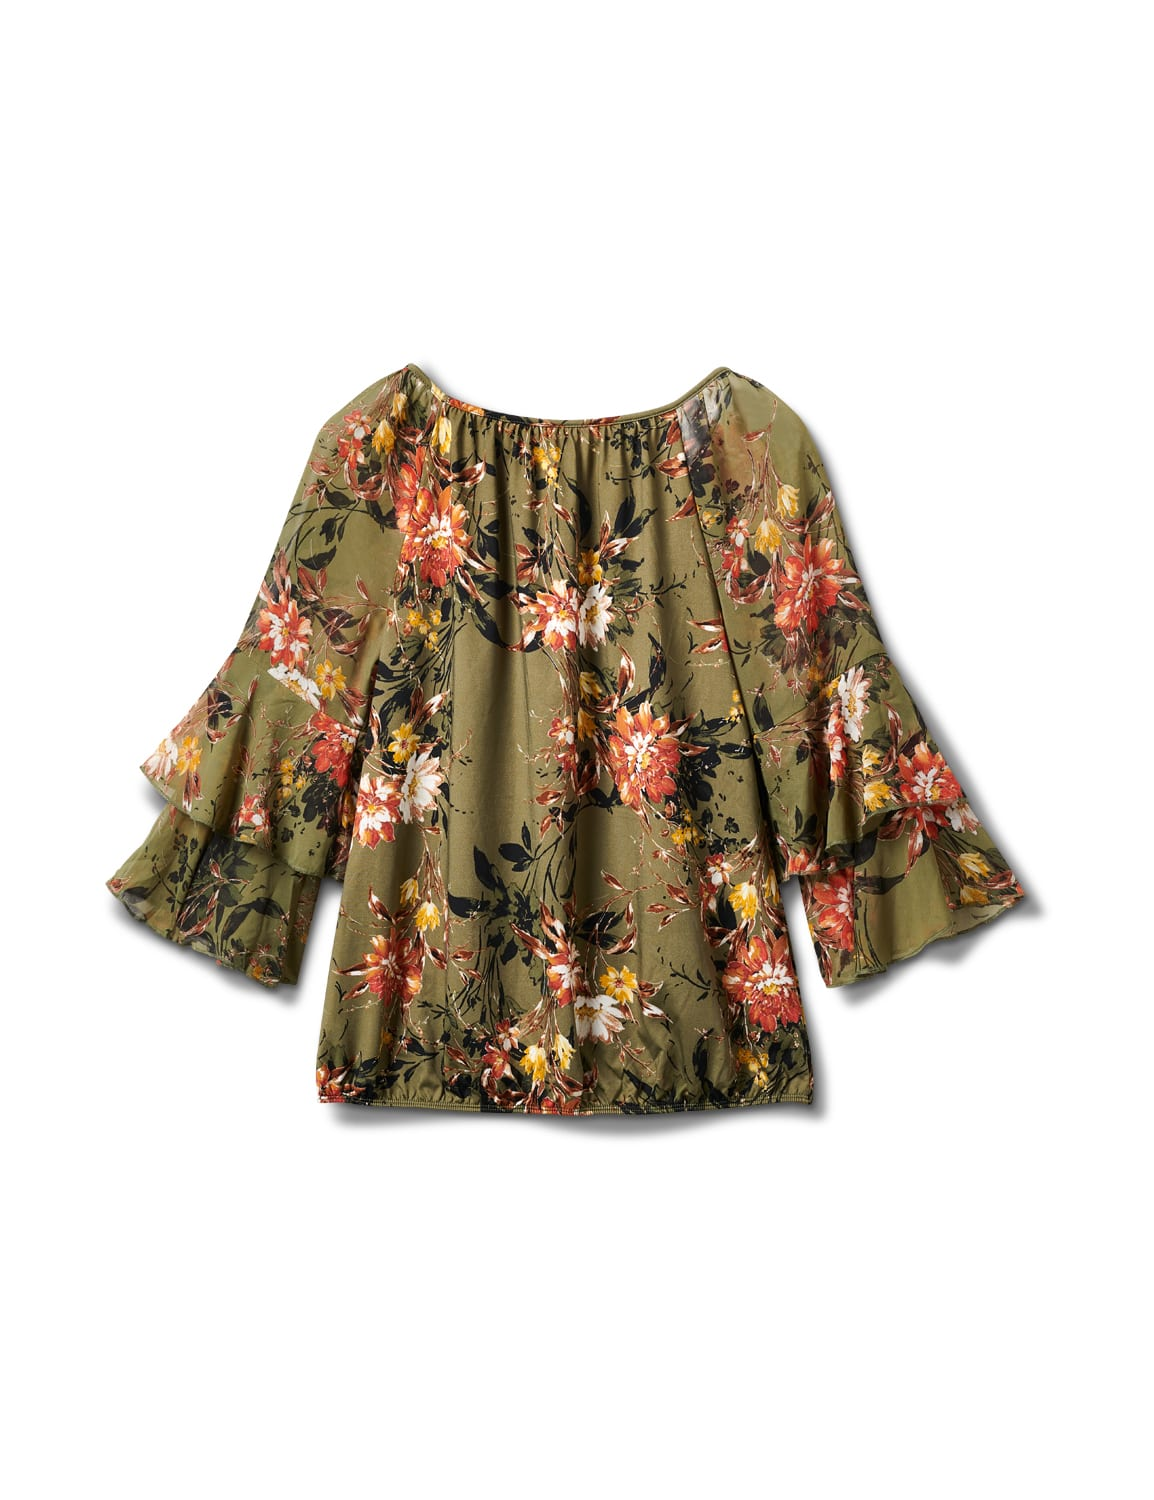 Novelty Sleeve Floral Print Knit Top - Olive/Burnt Orange/Gold - Back